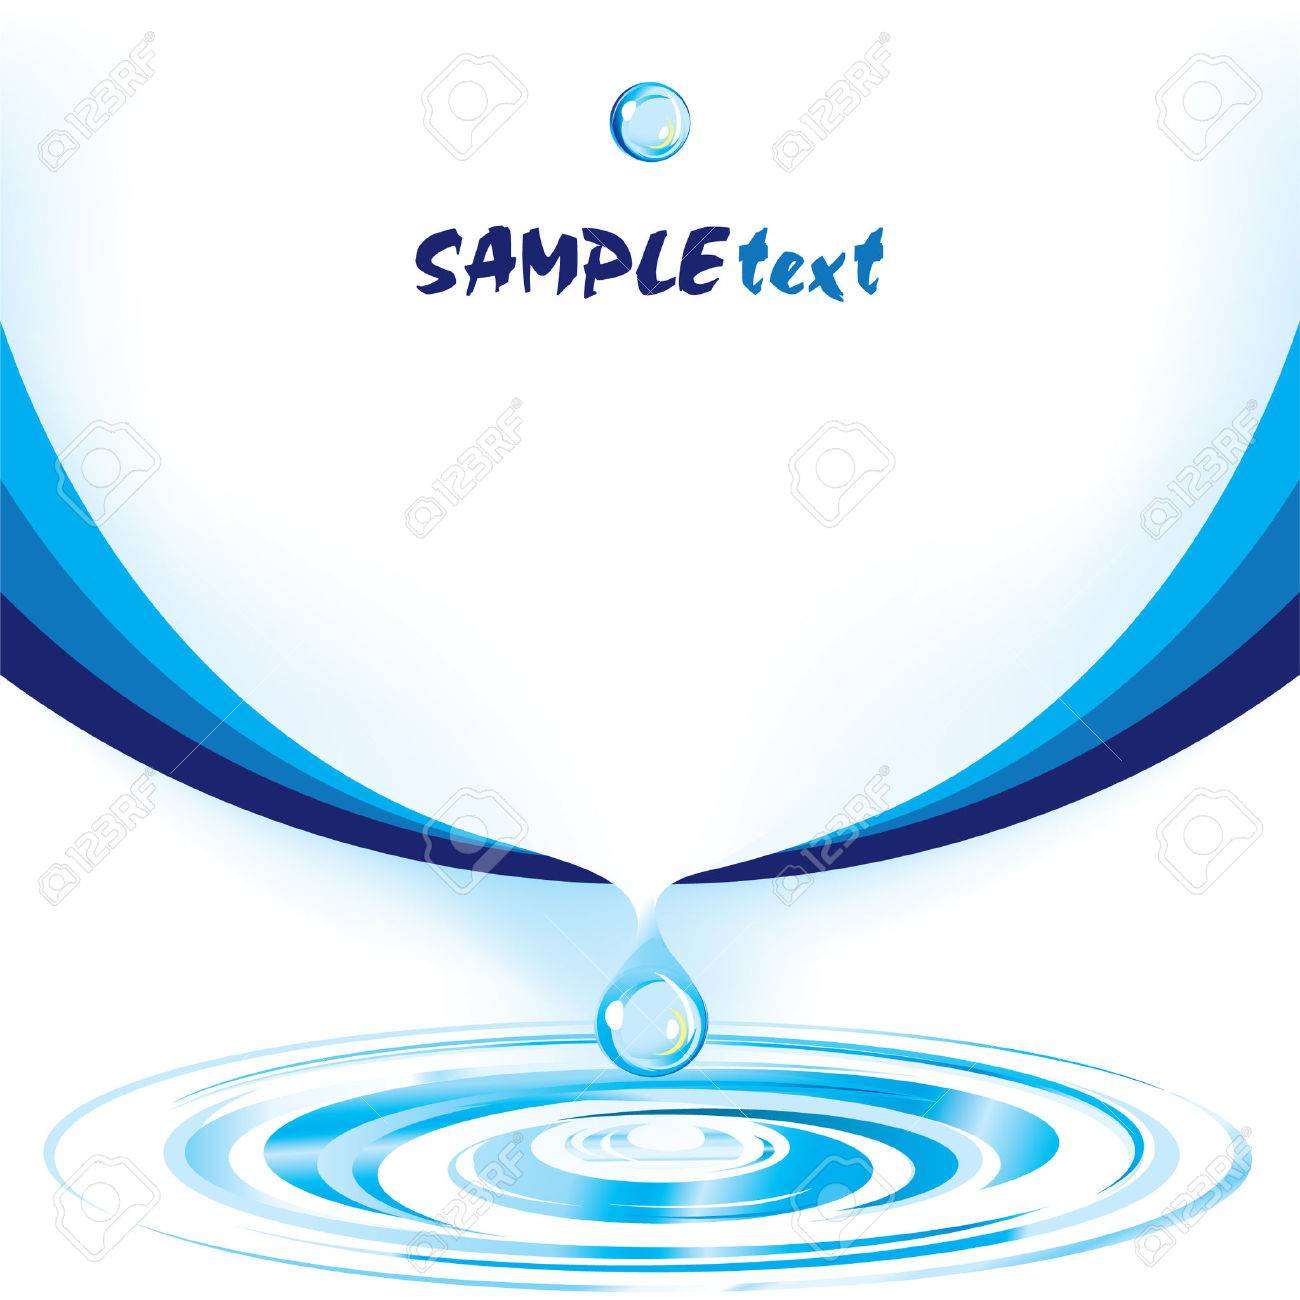 Vector Water Drop Design Template Series Royalty Free Cliparts ...